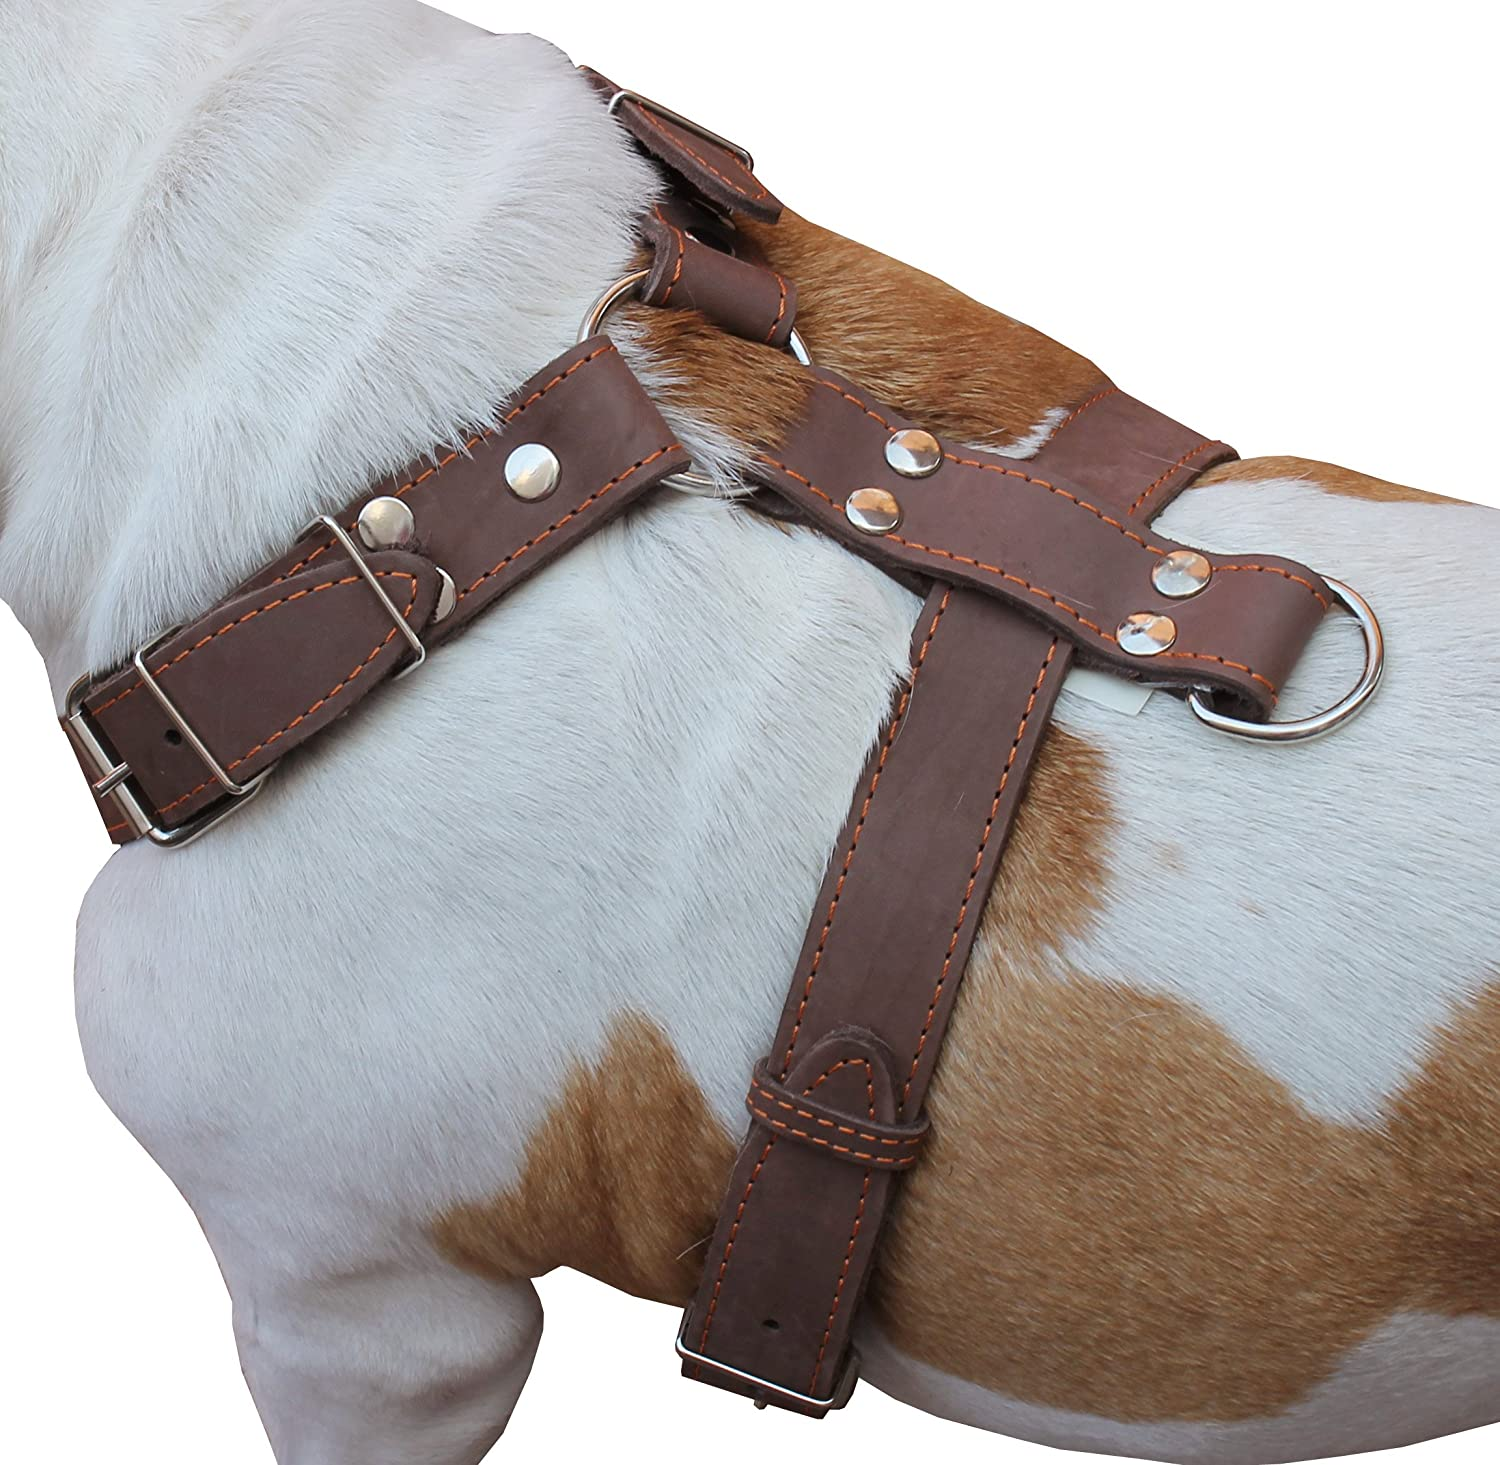 Brown Genuine Leather Dog Harness, Large to Xlarge. 33 -37  Chest, 1.5  Wide Straps, Cane Corso Mastiff